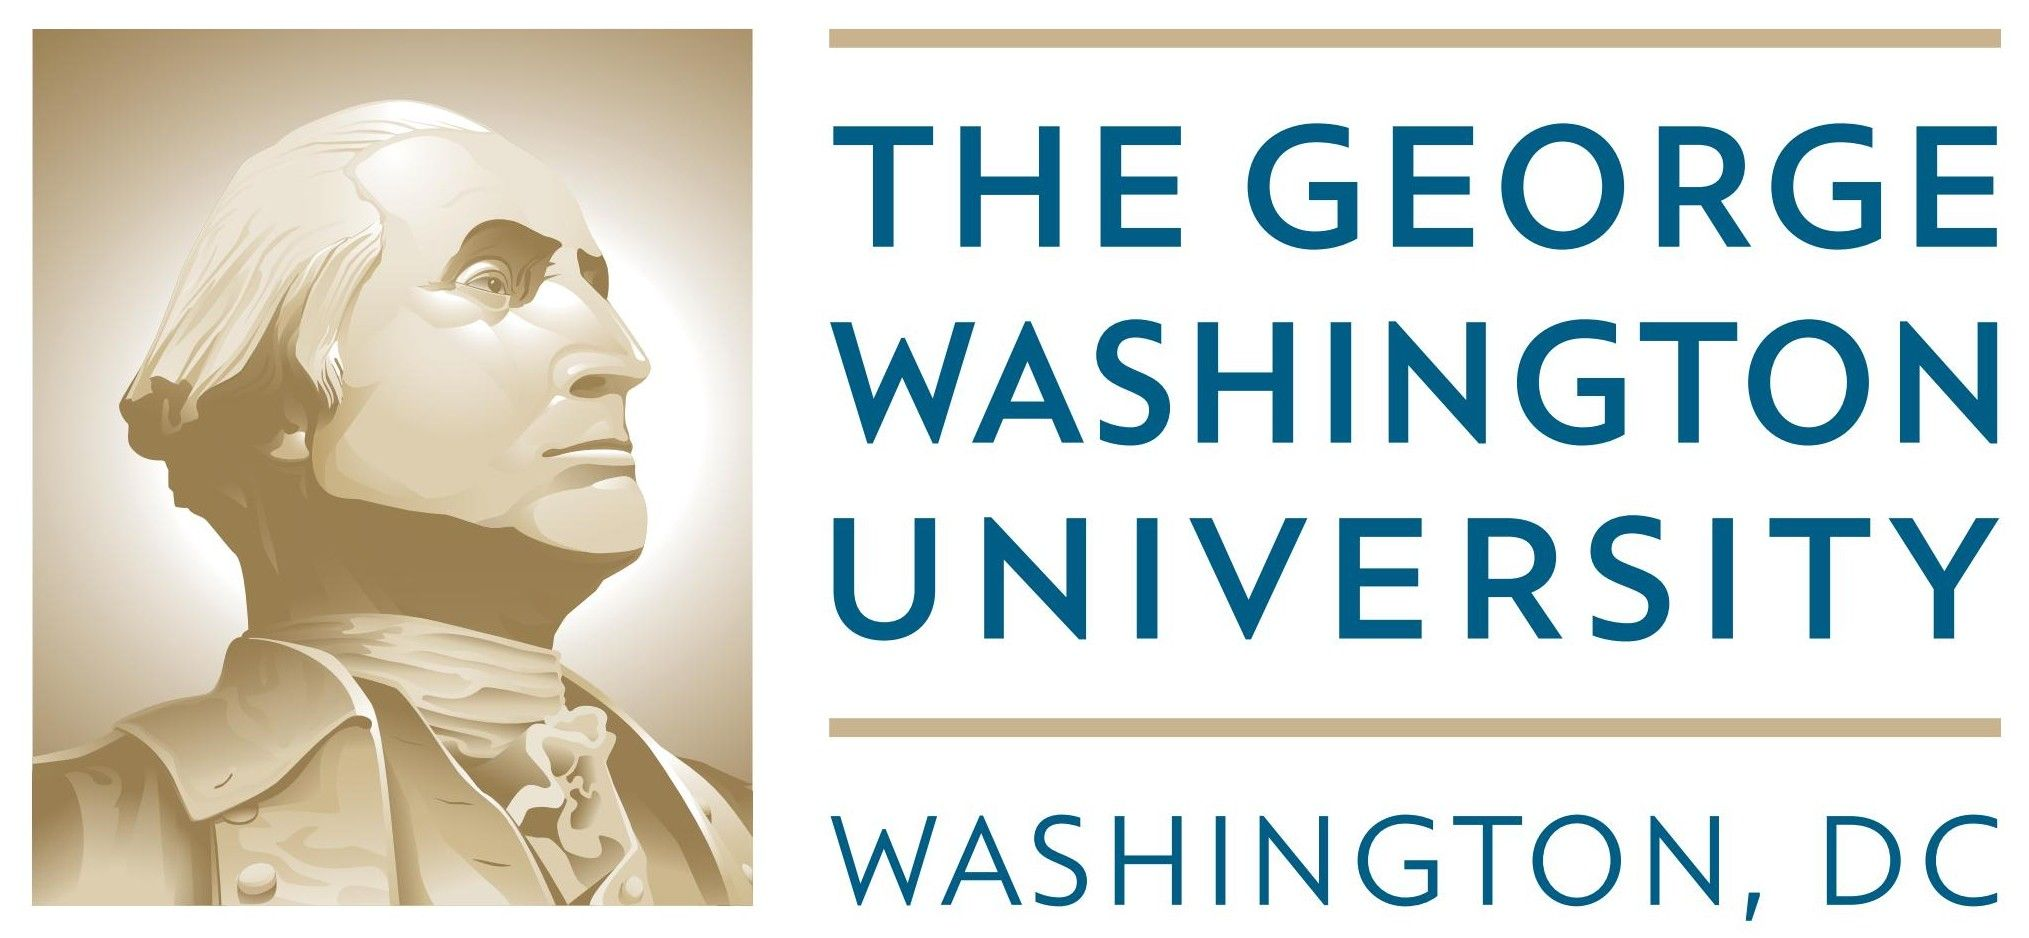 GW Washington University Logo Download Vector